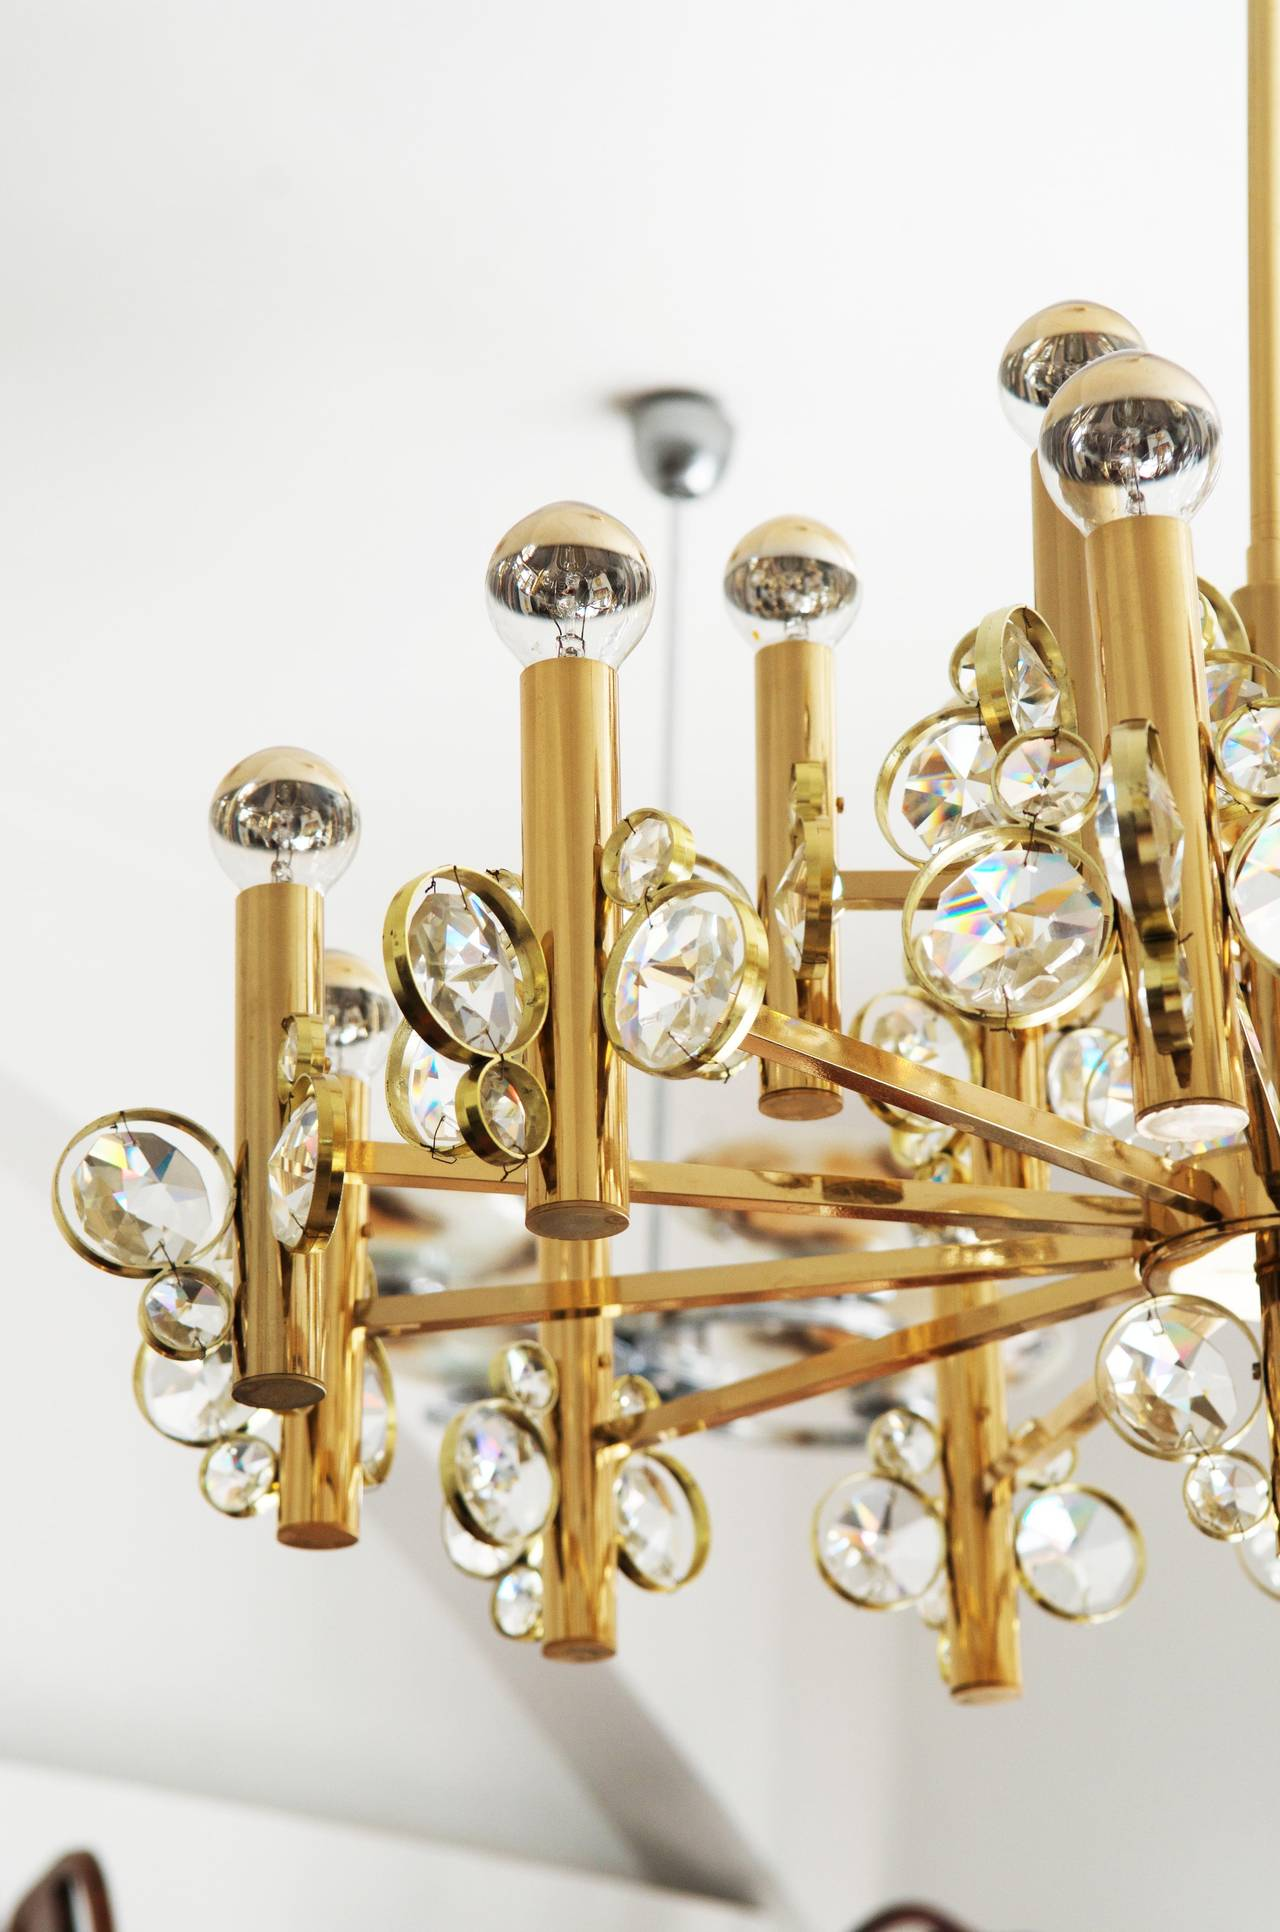 Impressive and stunning crystal chandelier from about 1960s attributed to Gaetano Sciolari.